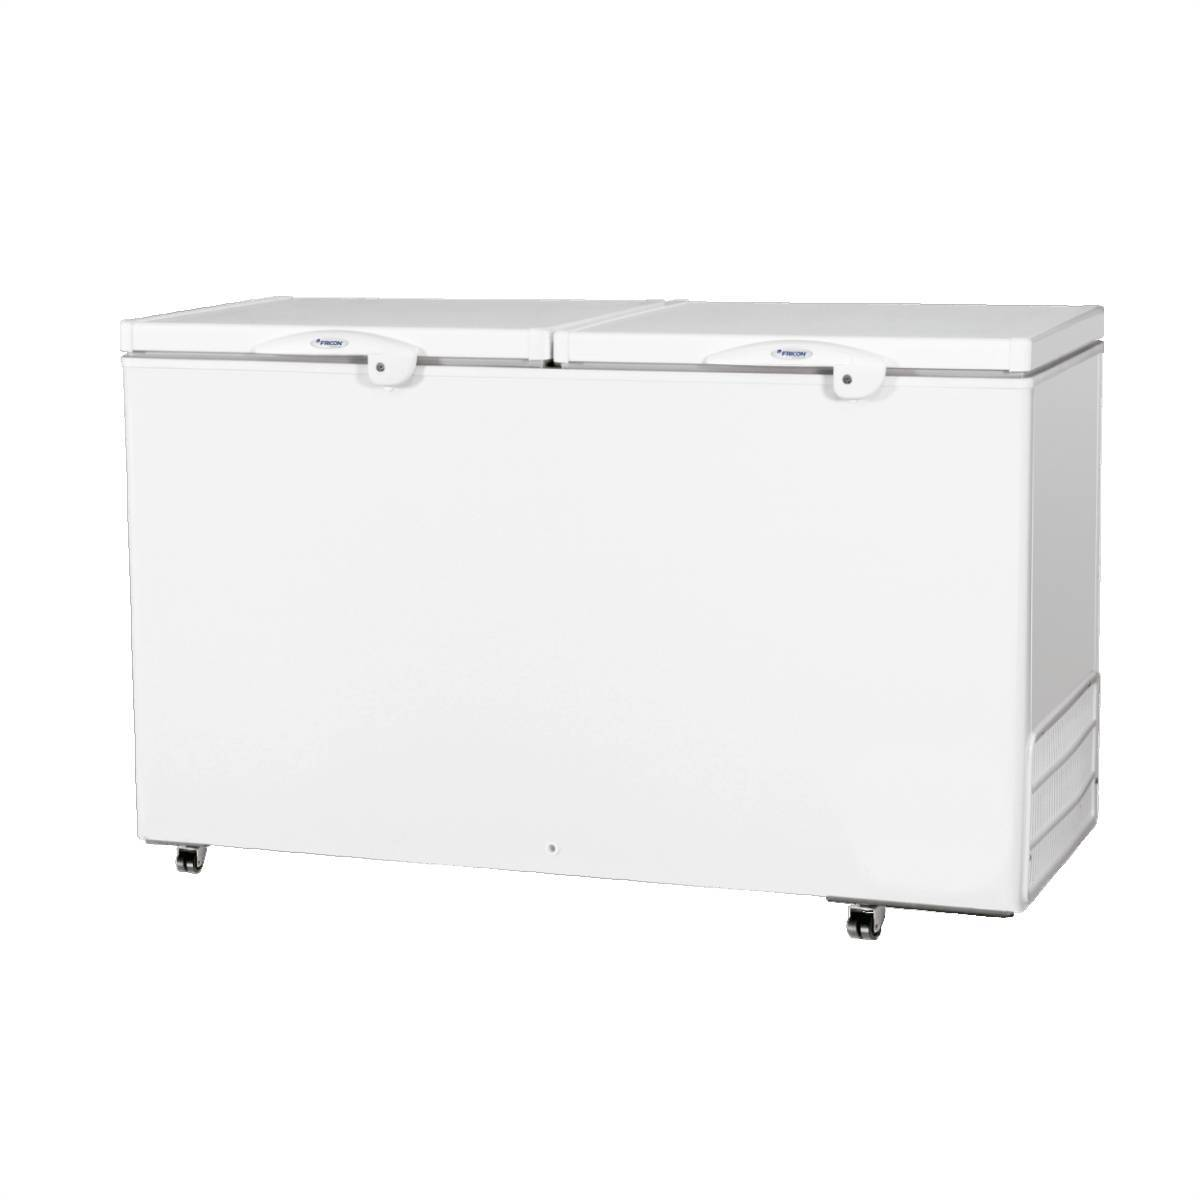 Freezer Horizontal 503L Dupla Ação HCED503 Fricon - Magazine do Chef